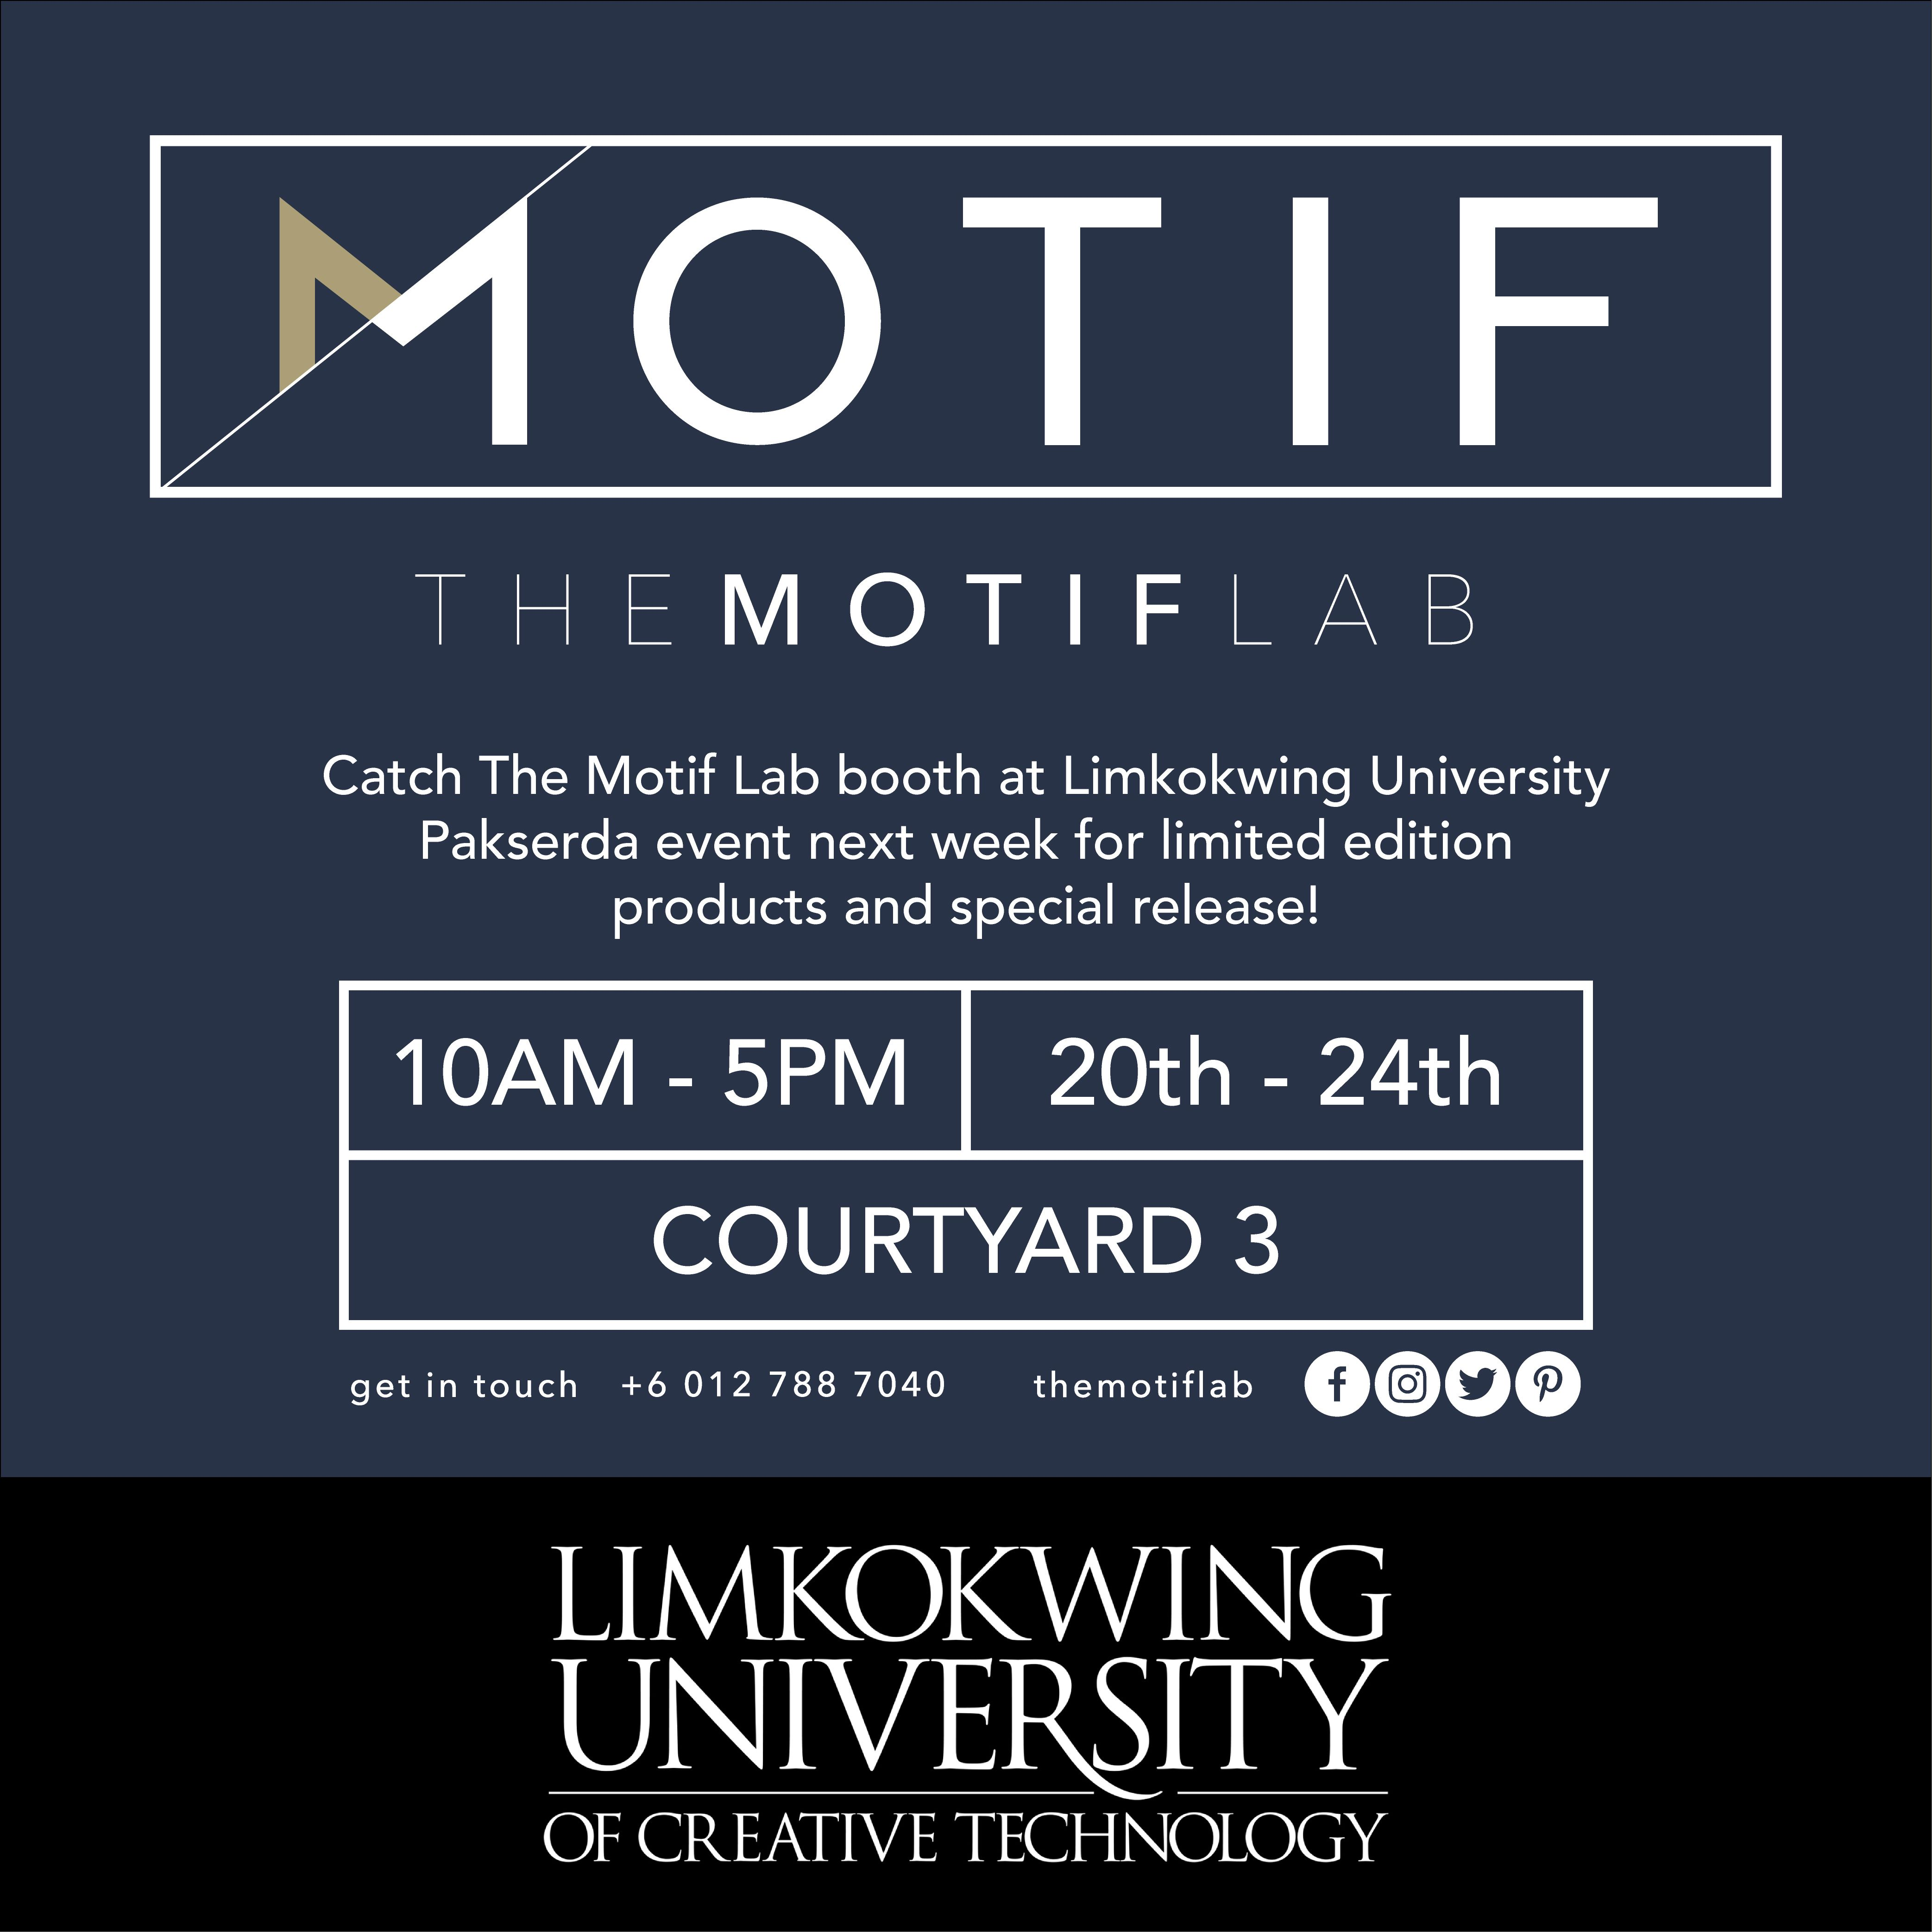 Don't miss out our first bazaar at Limkokwing University Pakserda event next week! Stay tune and see you there! www.facebook.com/themotiflab